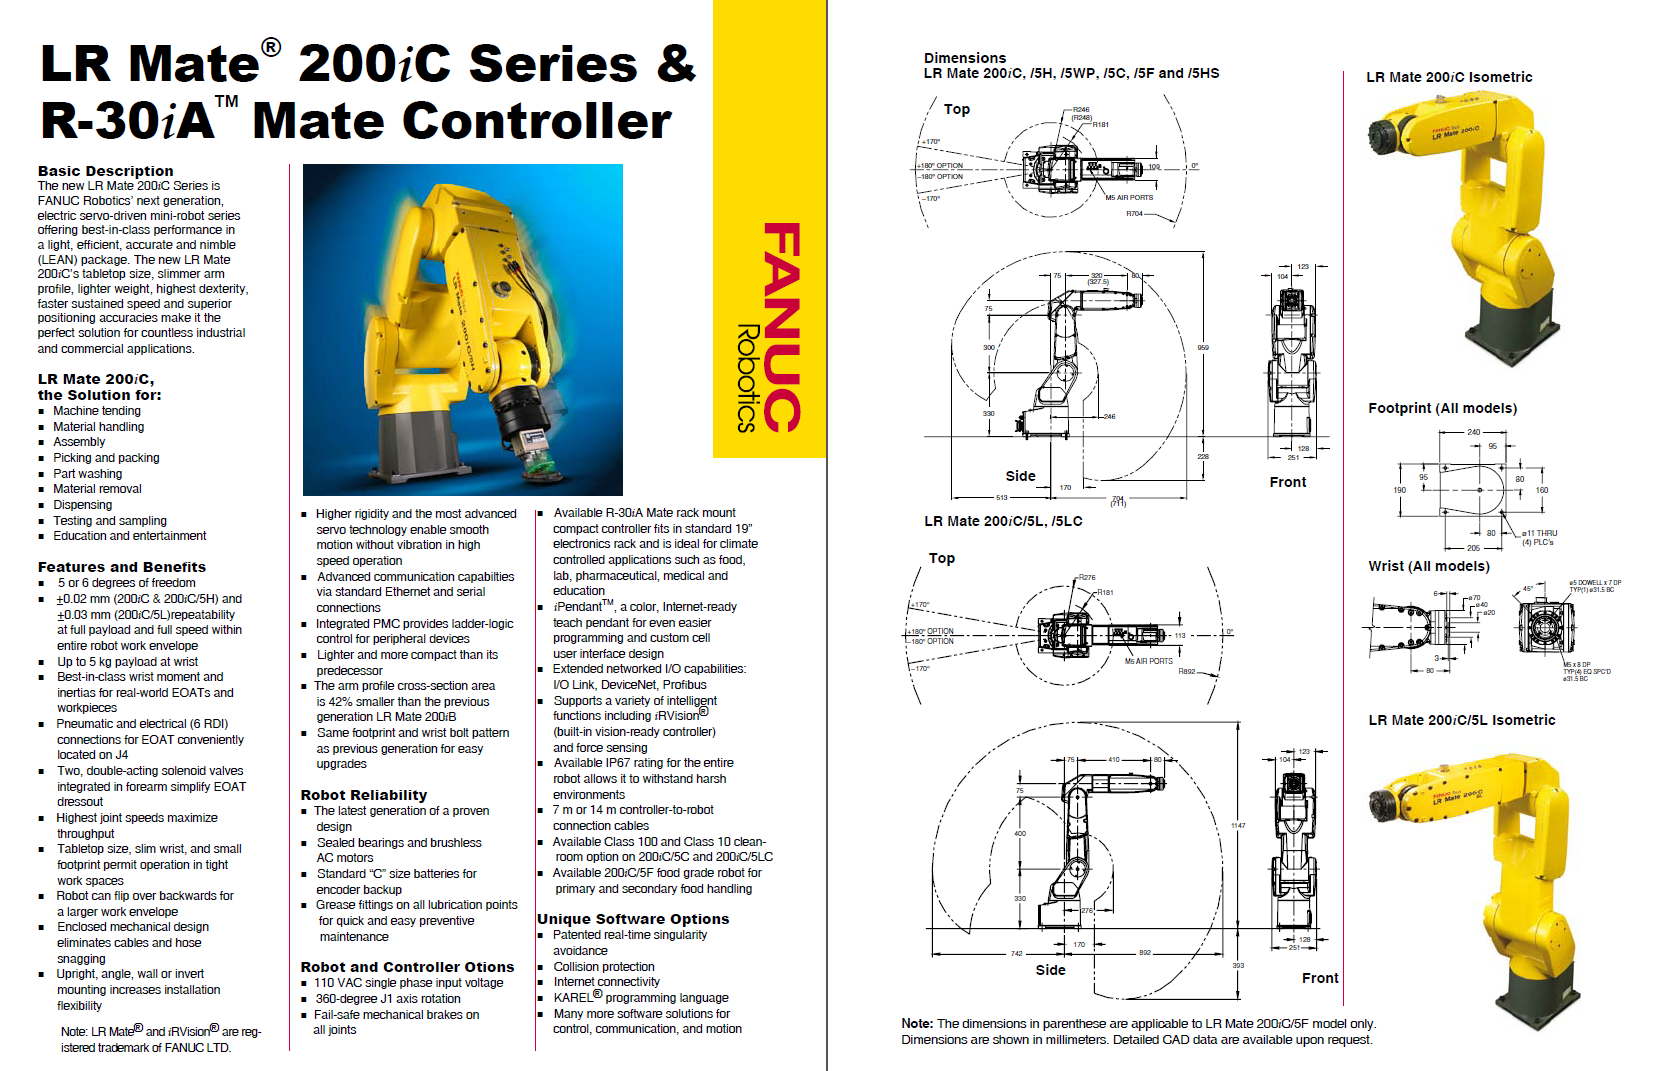 Technical specifications of the Fanuc LR Mate 200iC.